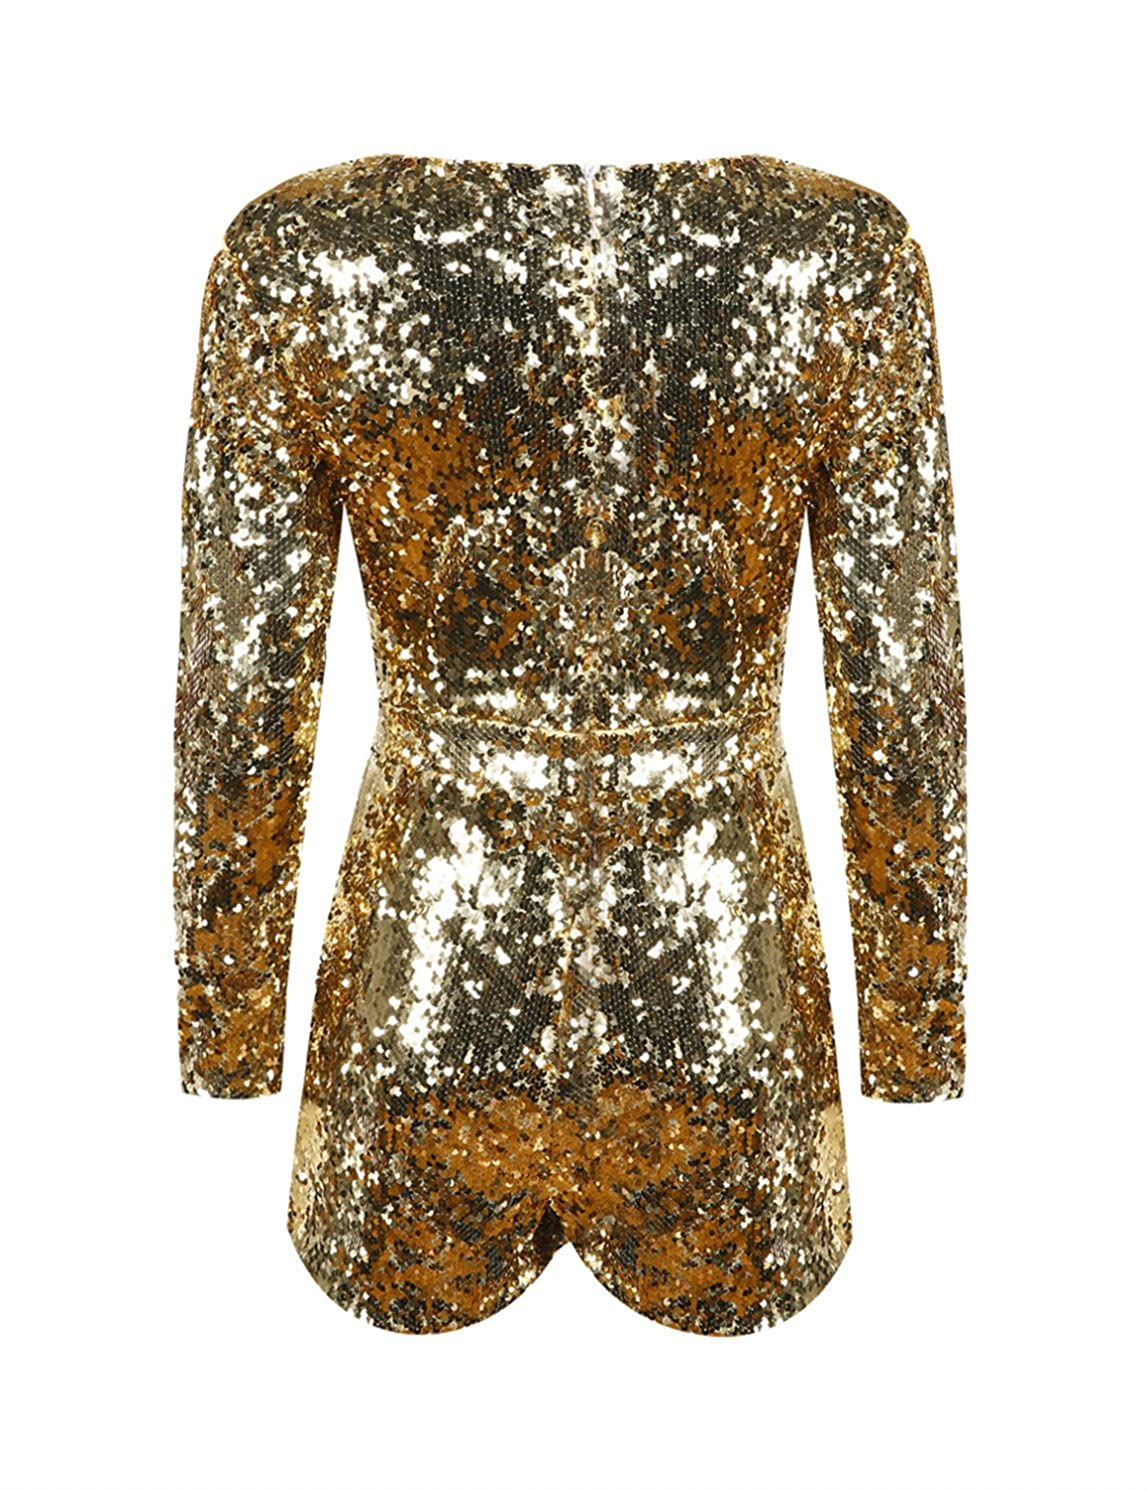 b547c09dd3 Richlulu Womens Sparkly Sequin Plunge V Neck Party Star Romper Jumpsuit  (X-Large